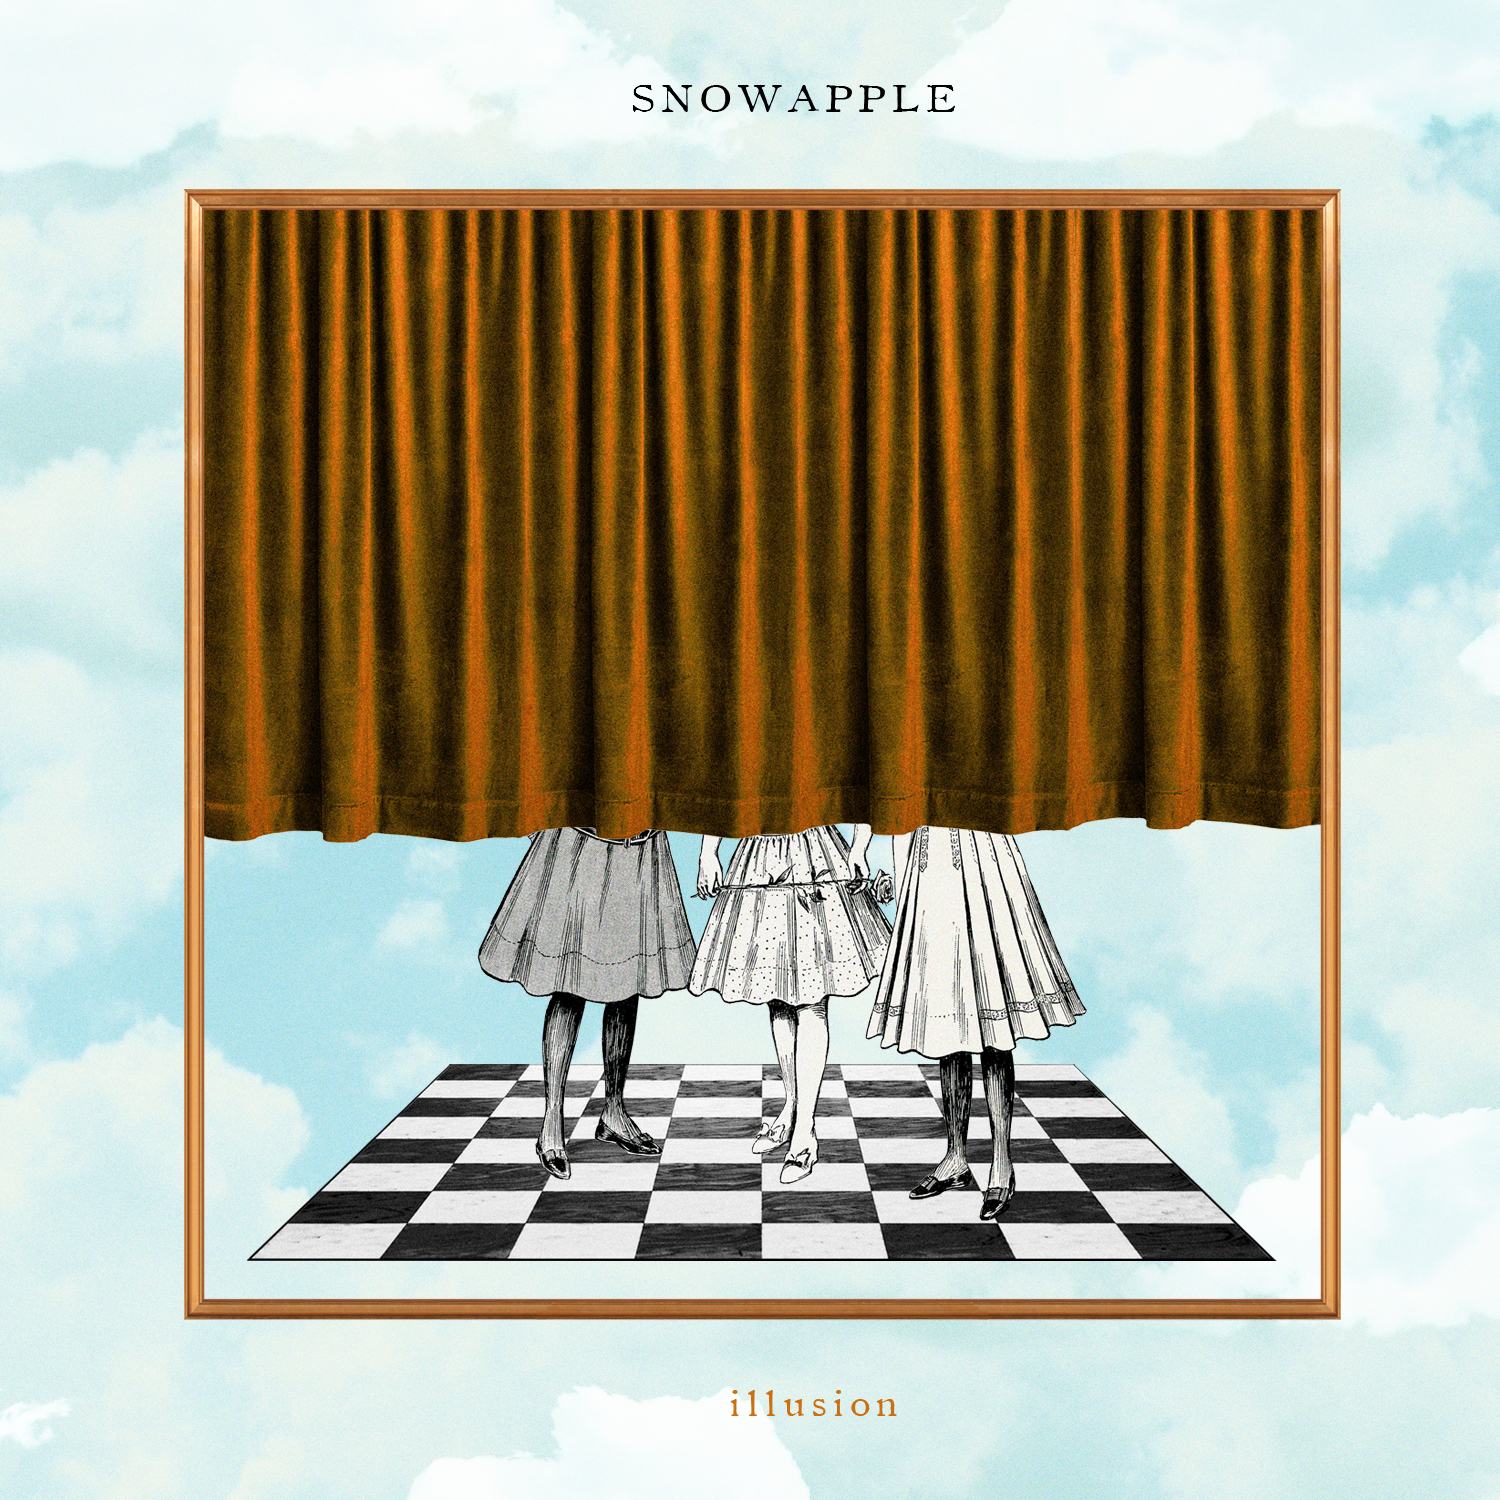 "ZIP098, 2015 | Snowapple ""Illusion"""